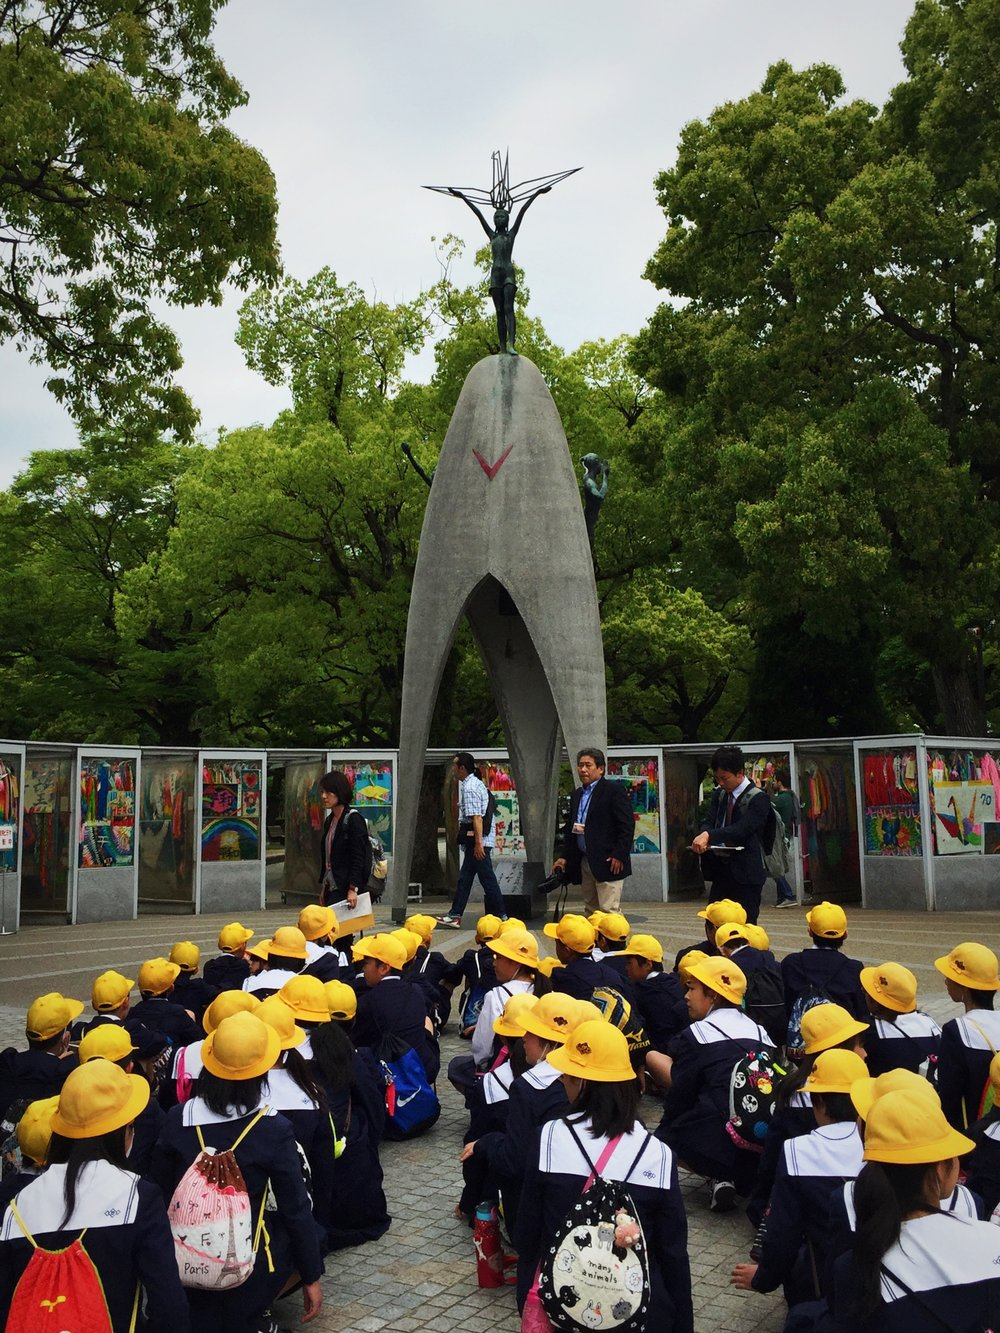 School field trip to the Hiroshima Peace Memorial Park, remembering the first-ever use of the atomic bomb and its tragic, epic impacts.